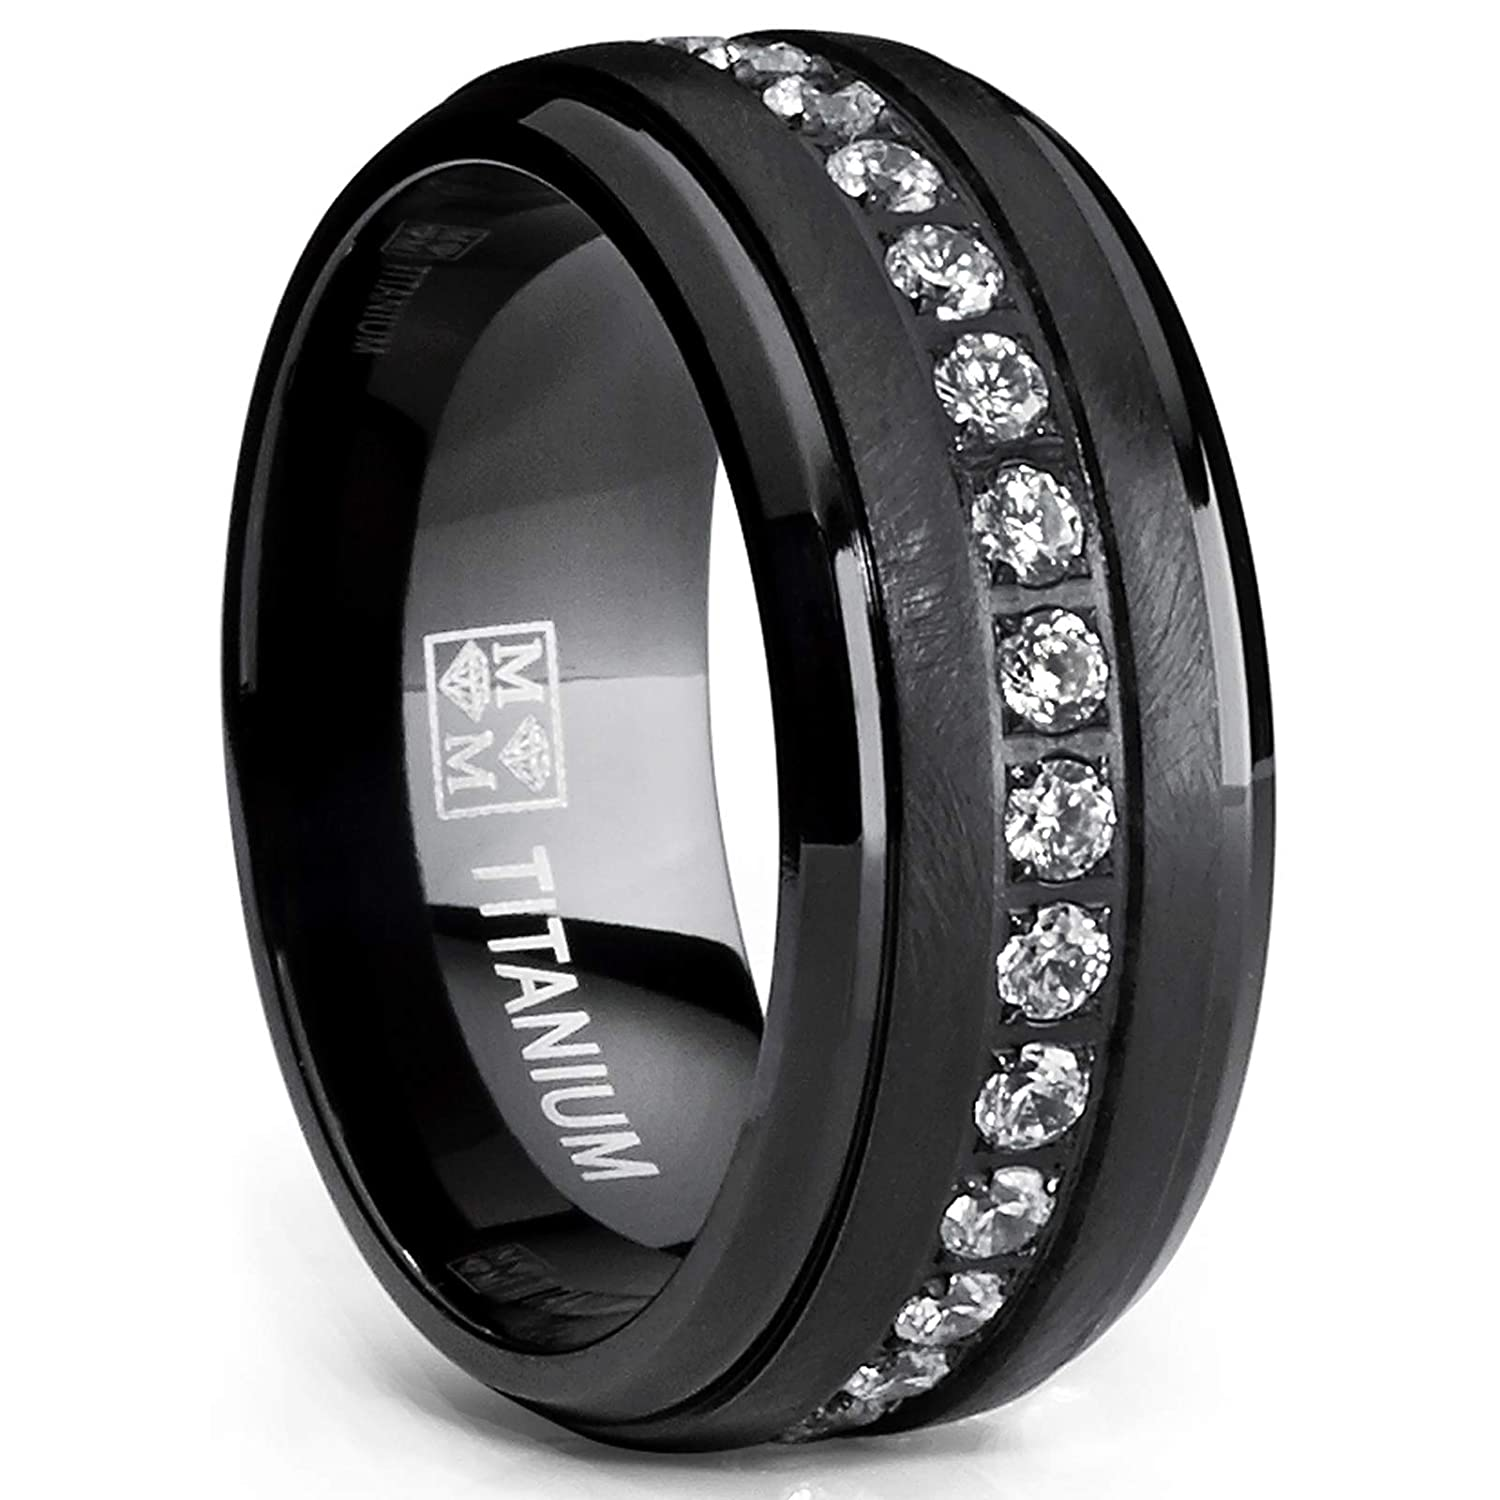 Ultimate Metals Co. ® Black Titanium Men's Eternity Wedding Band Ring with Clear Round Cubic Zirconia 9mm